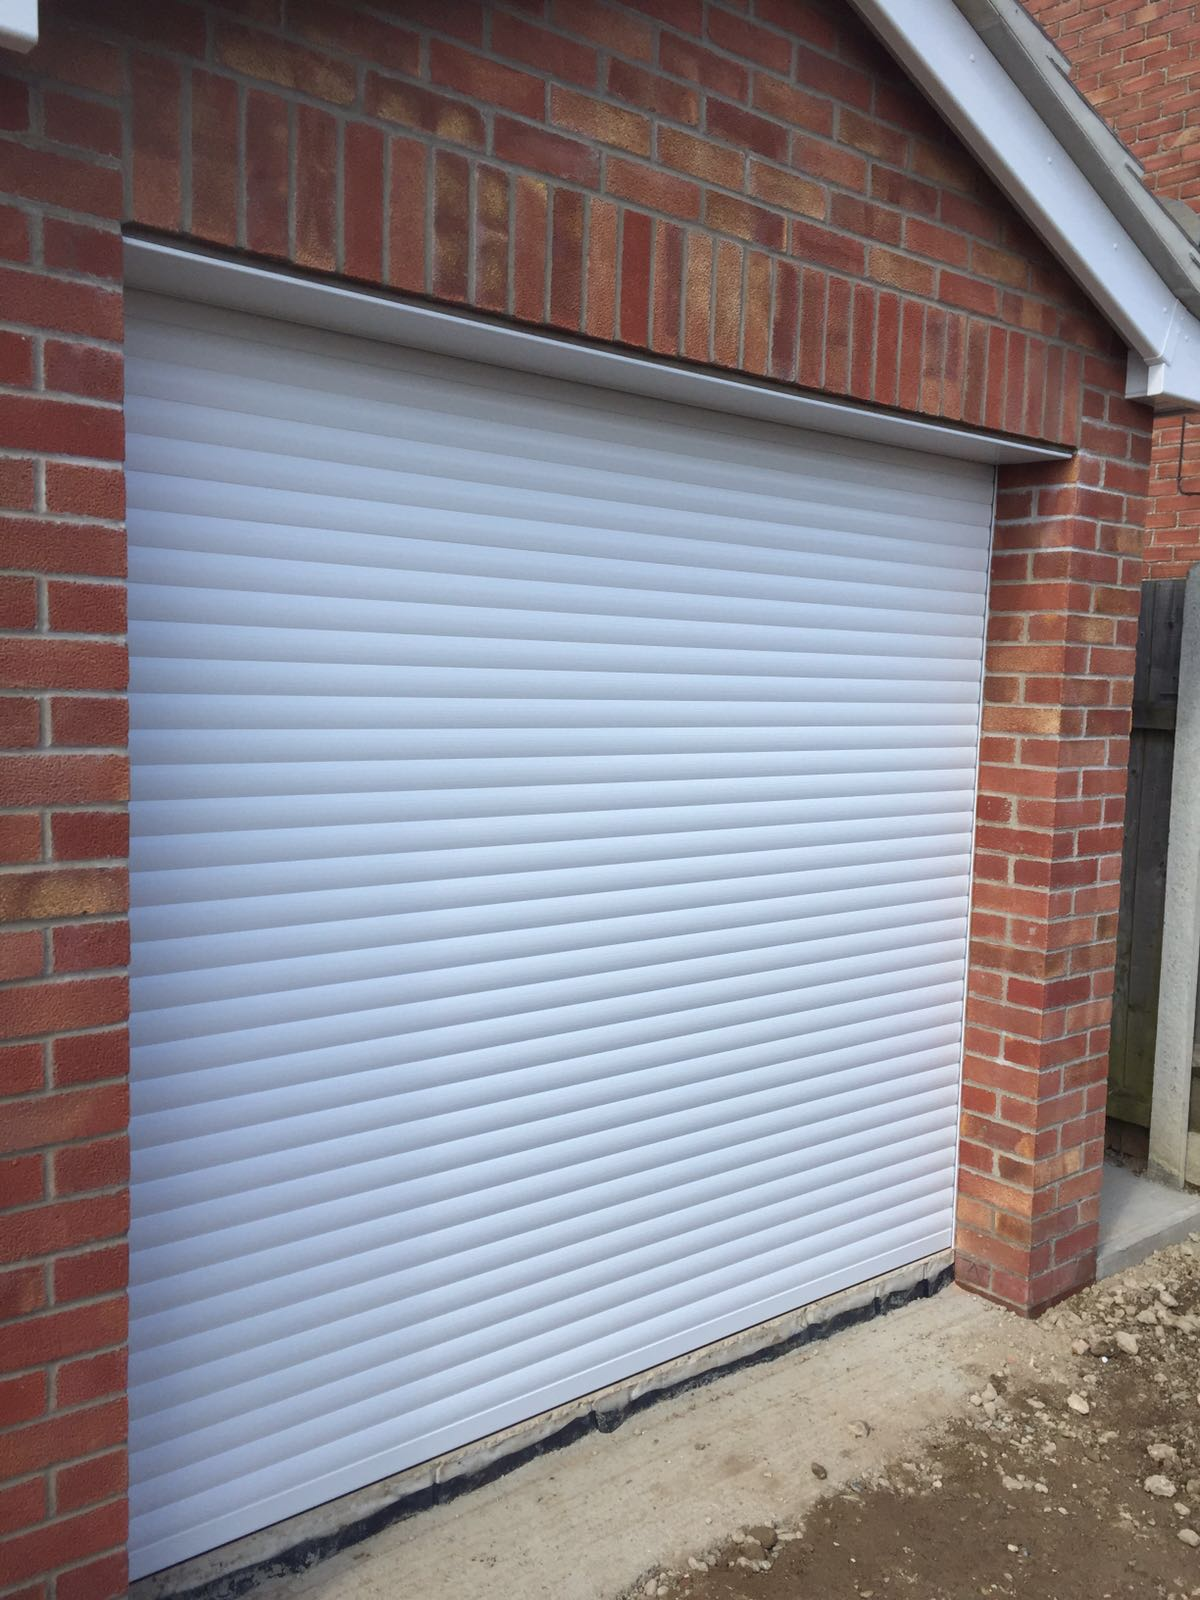 Doors To Garage: RD55 DIY Compact Roller Garage Door